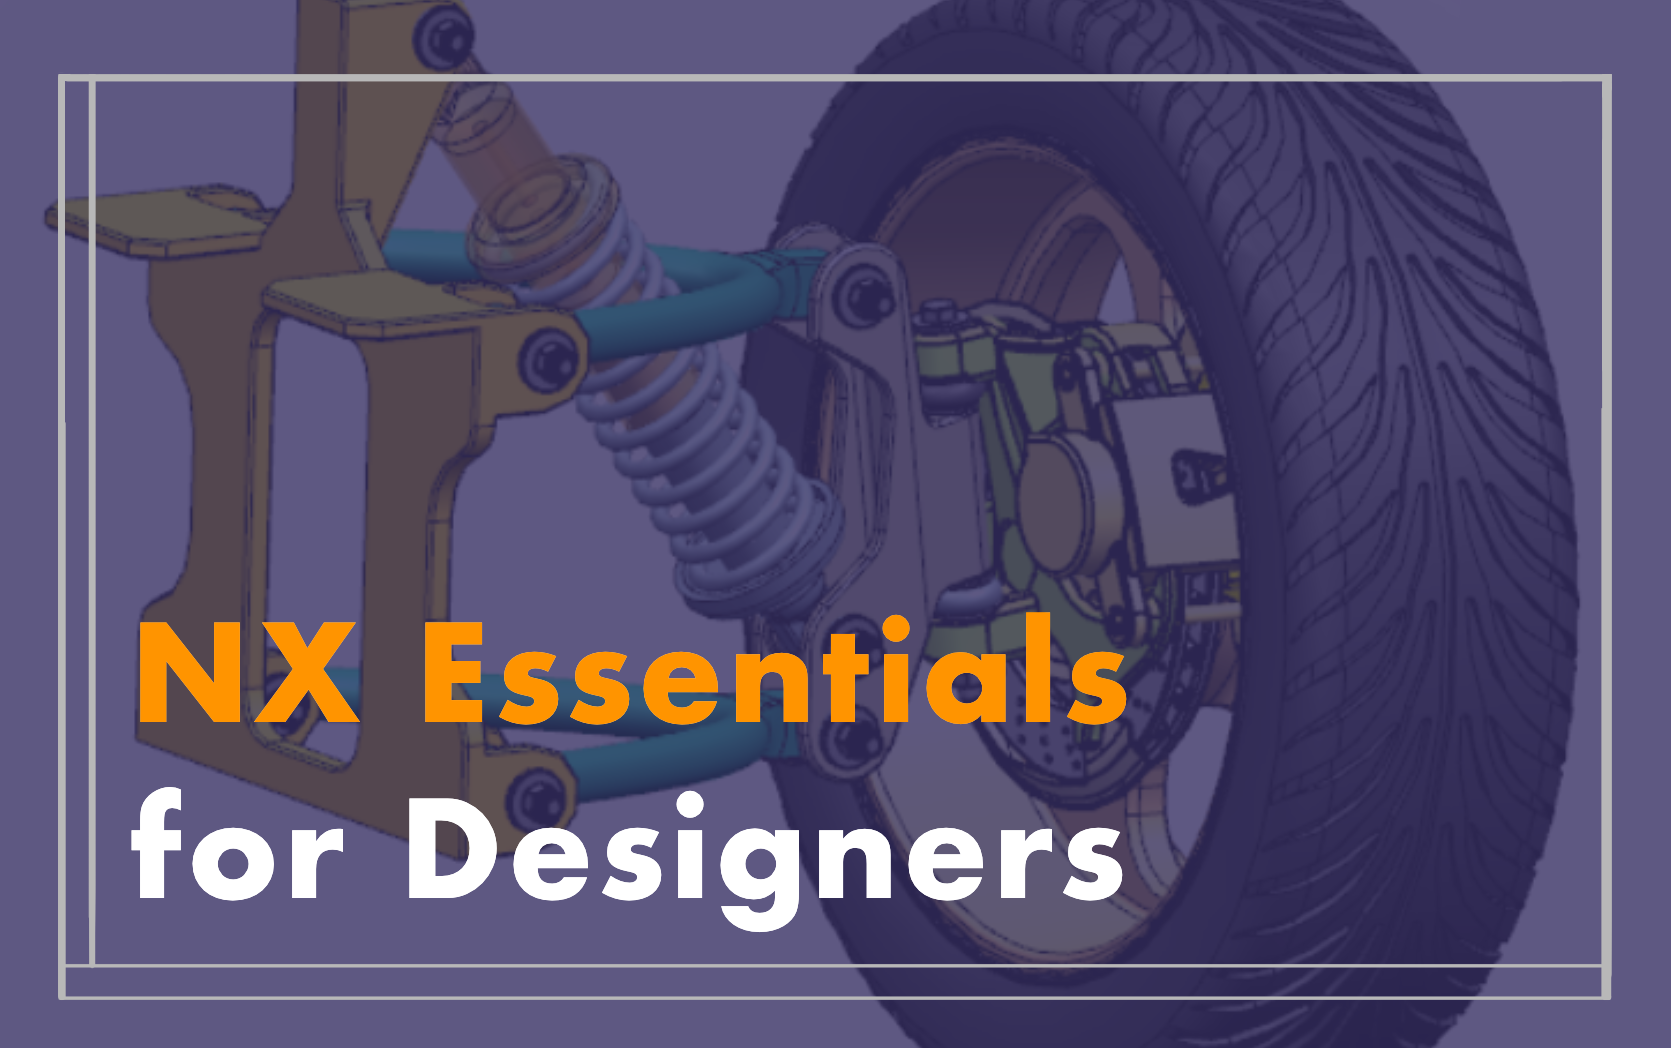 NX Essentials for Designers